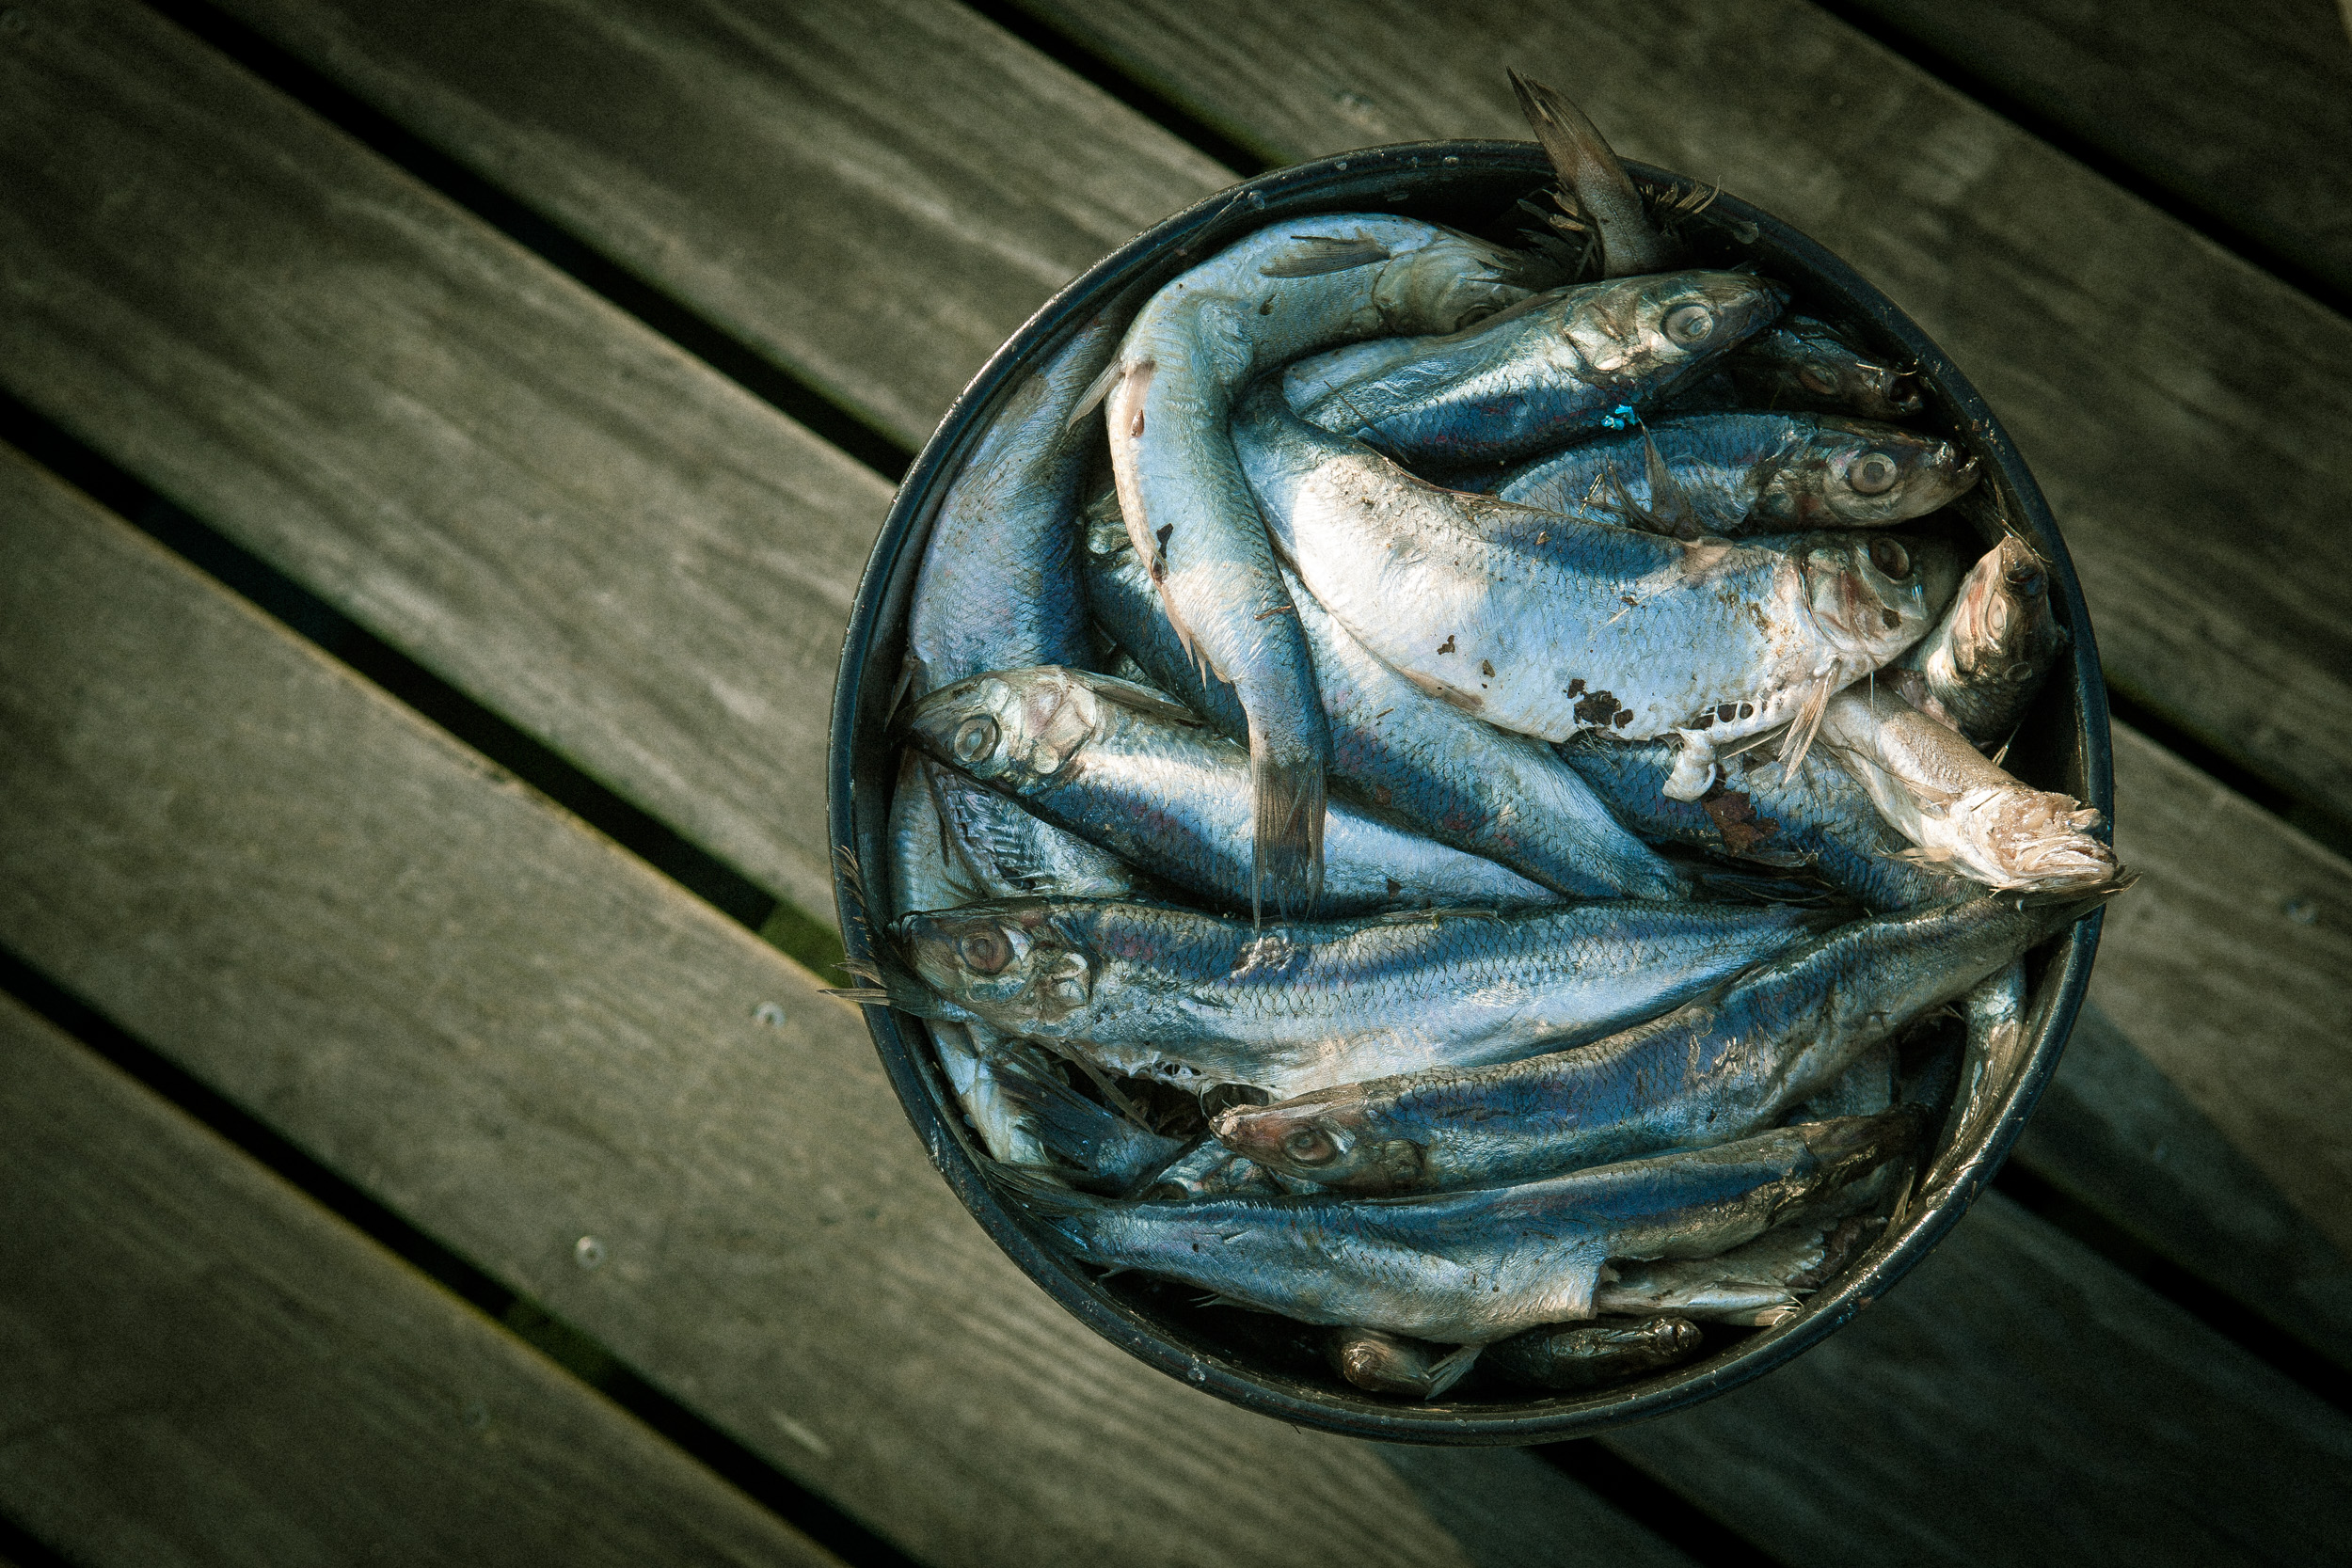 fish in bucket, Maine, shot by Steven P. Widoff